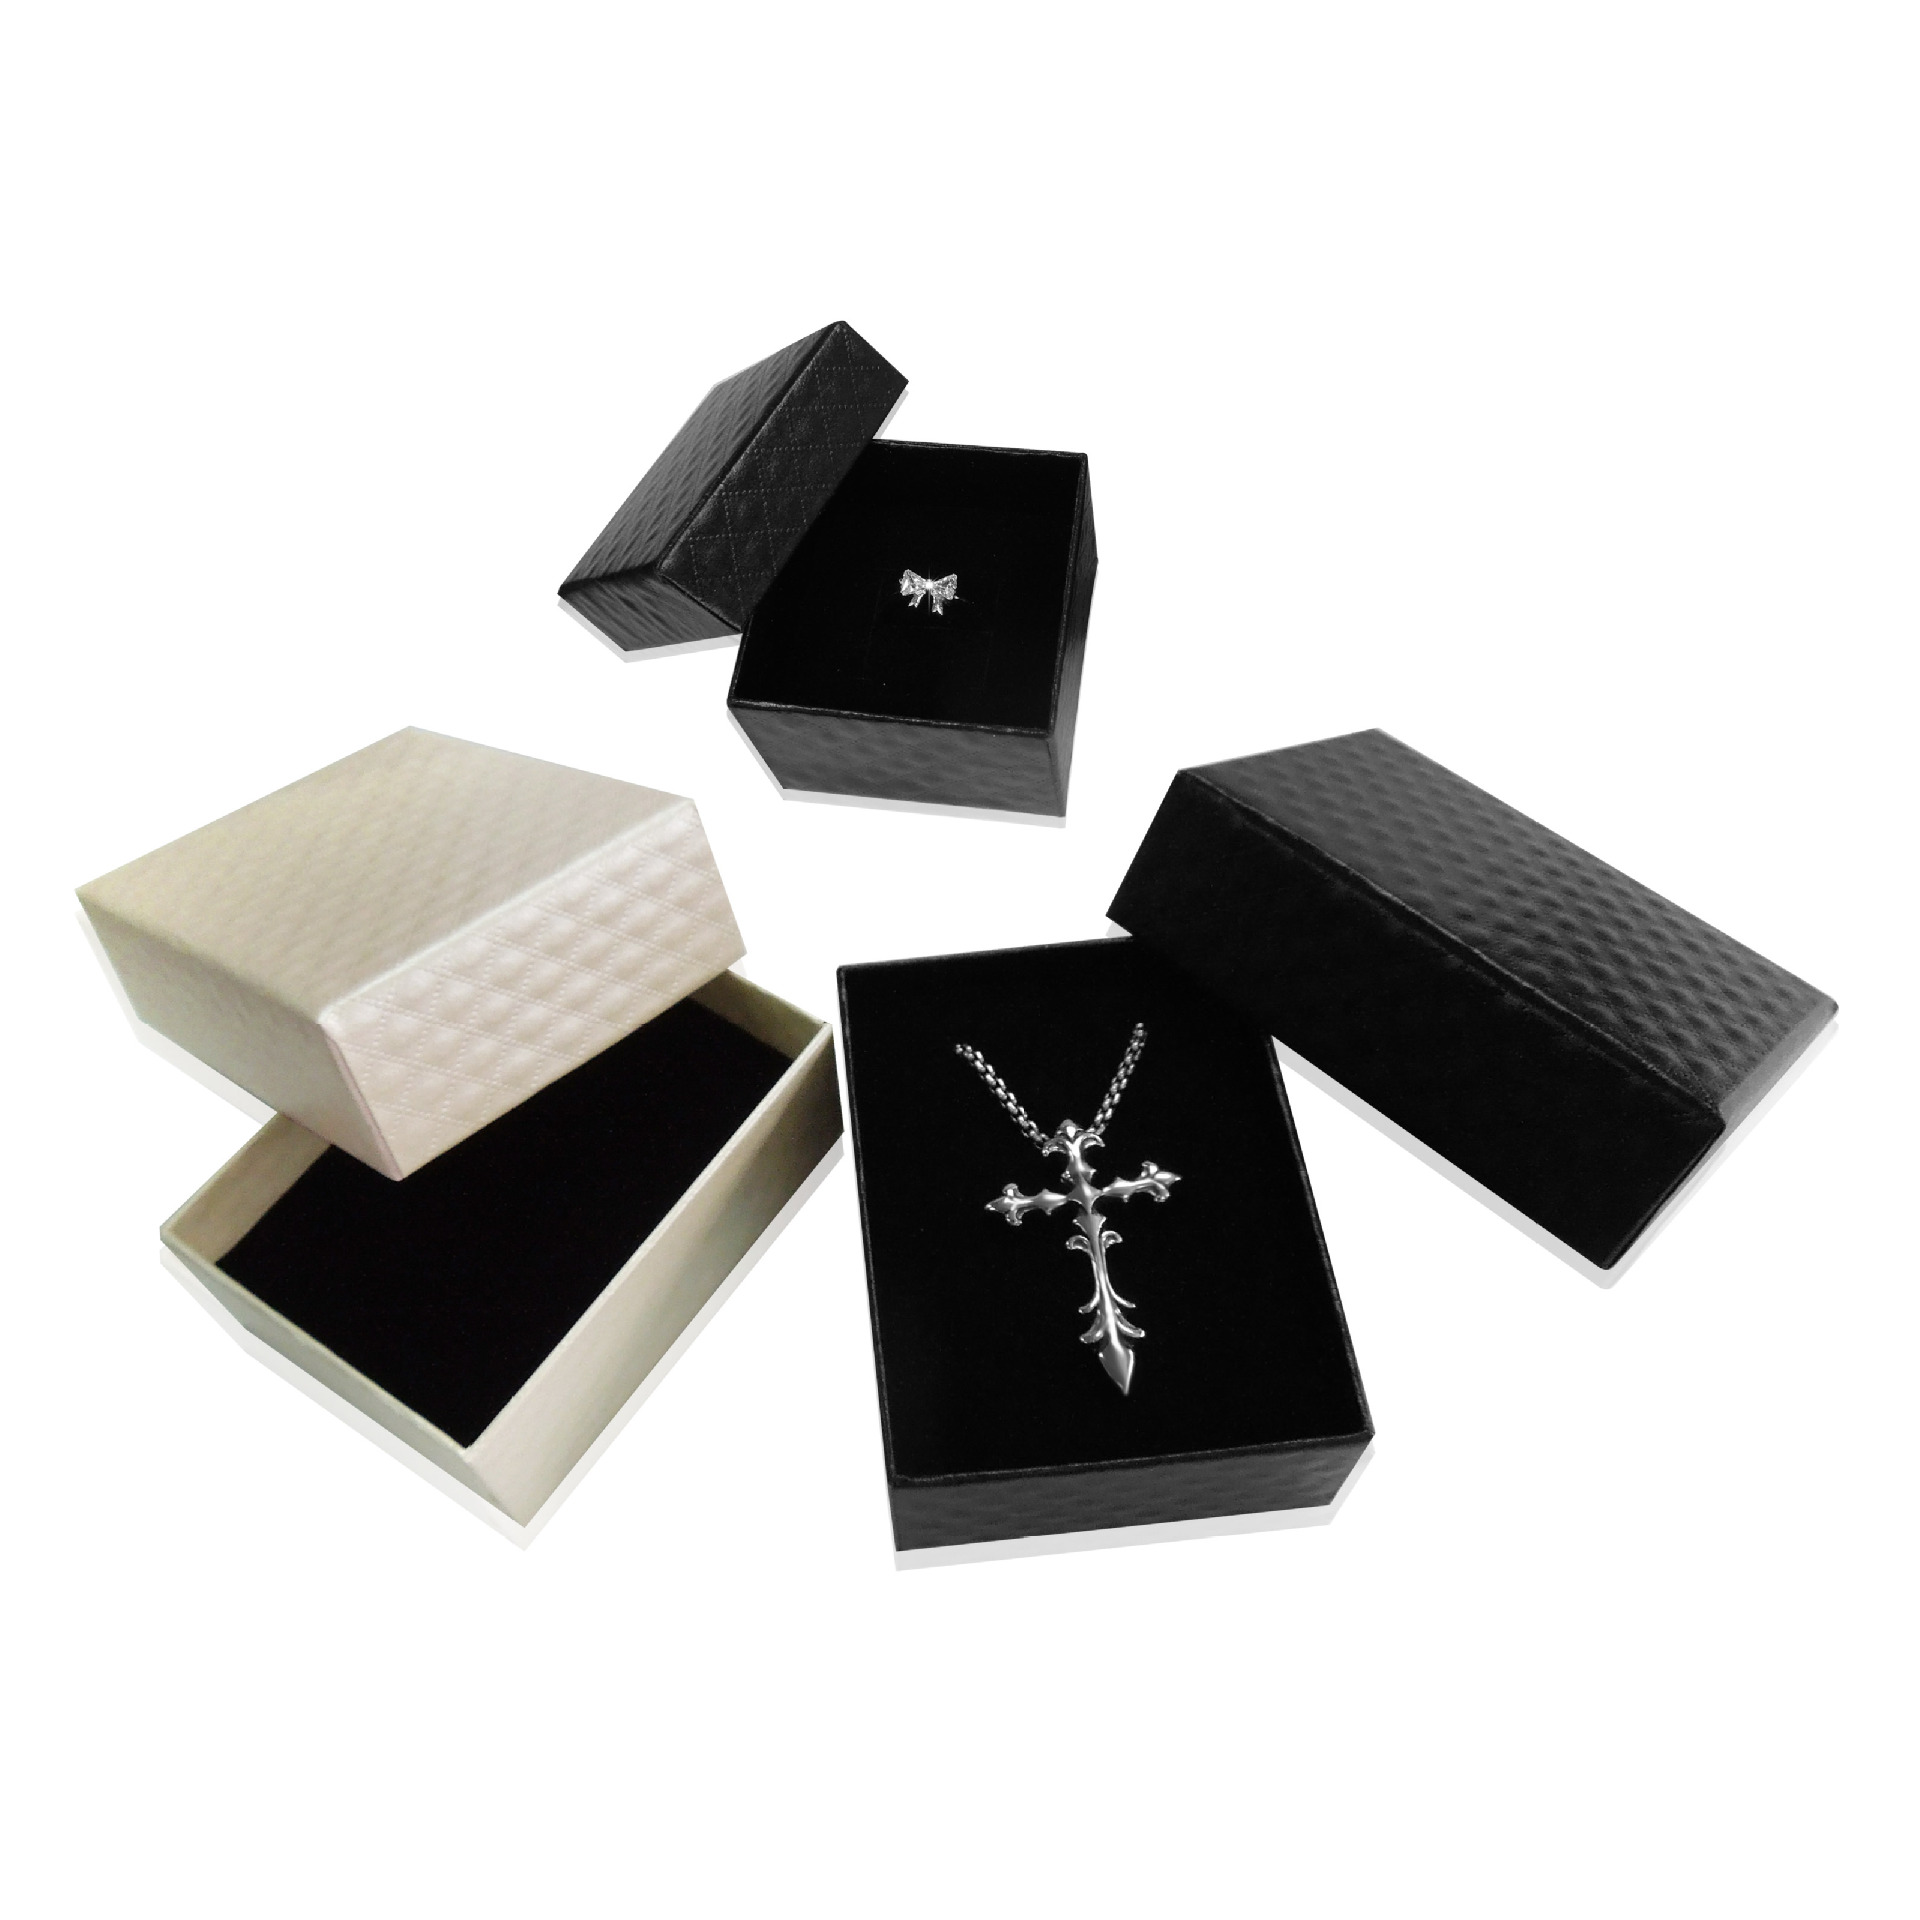 Jewelry Gift Box, Ring Pendant, Ear Pin Packing Box, Fashionable Exquisite black white Packing Box